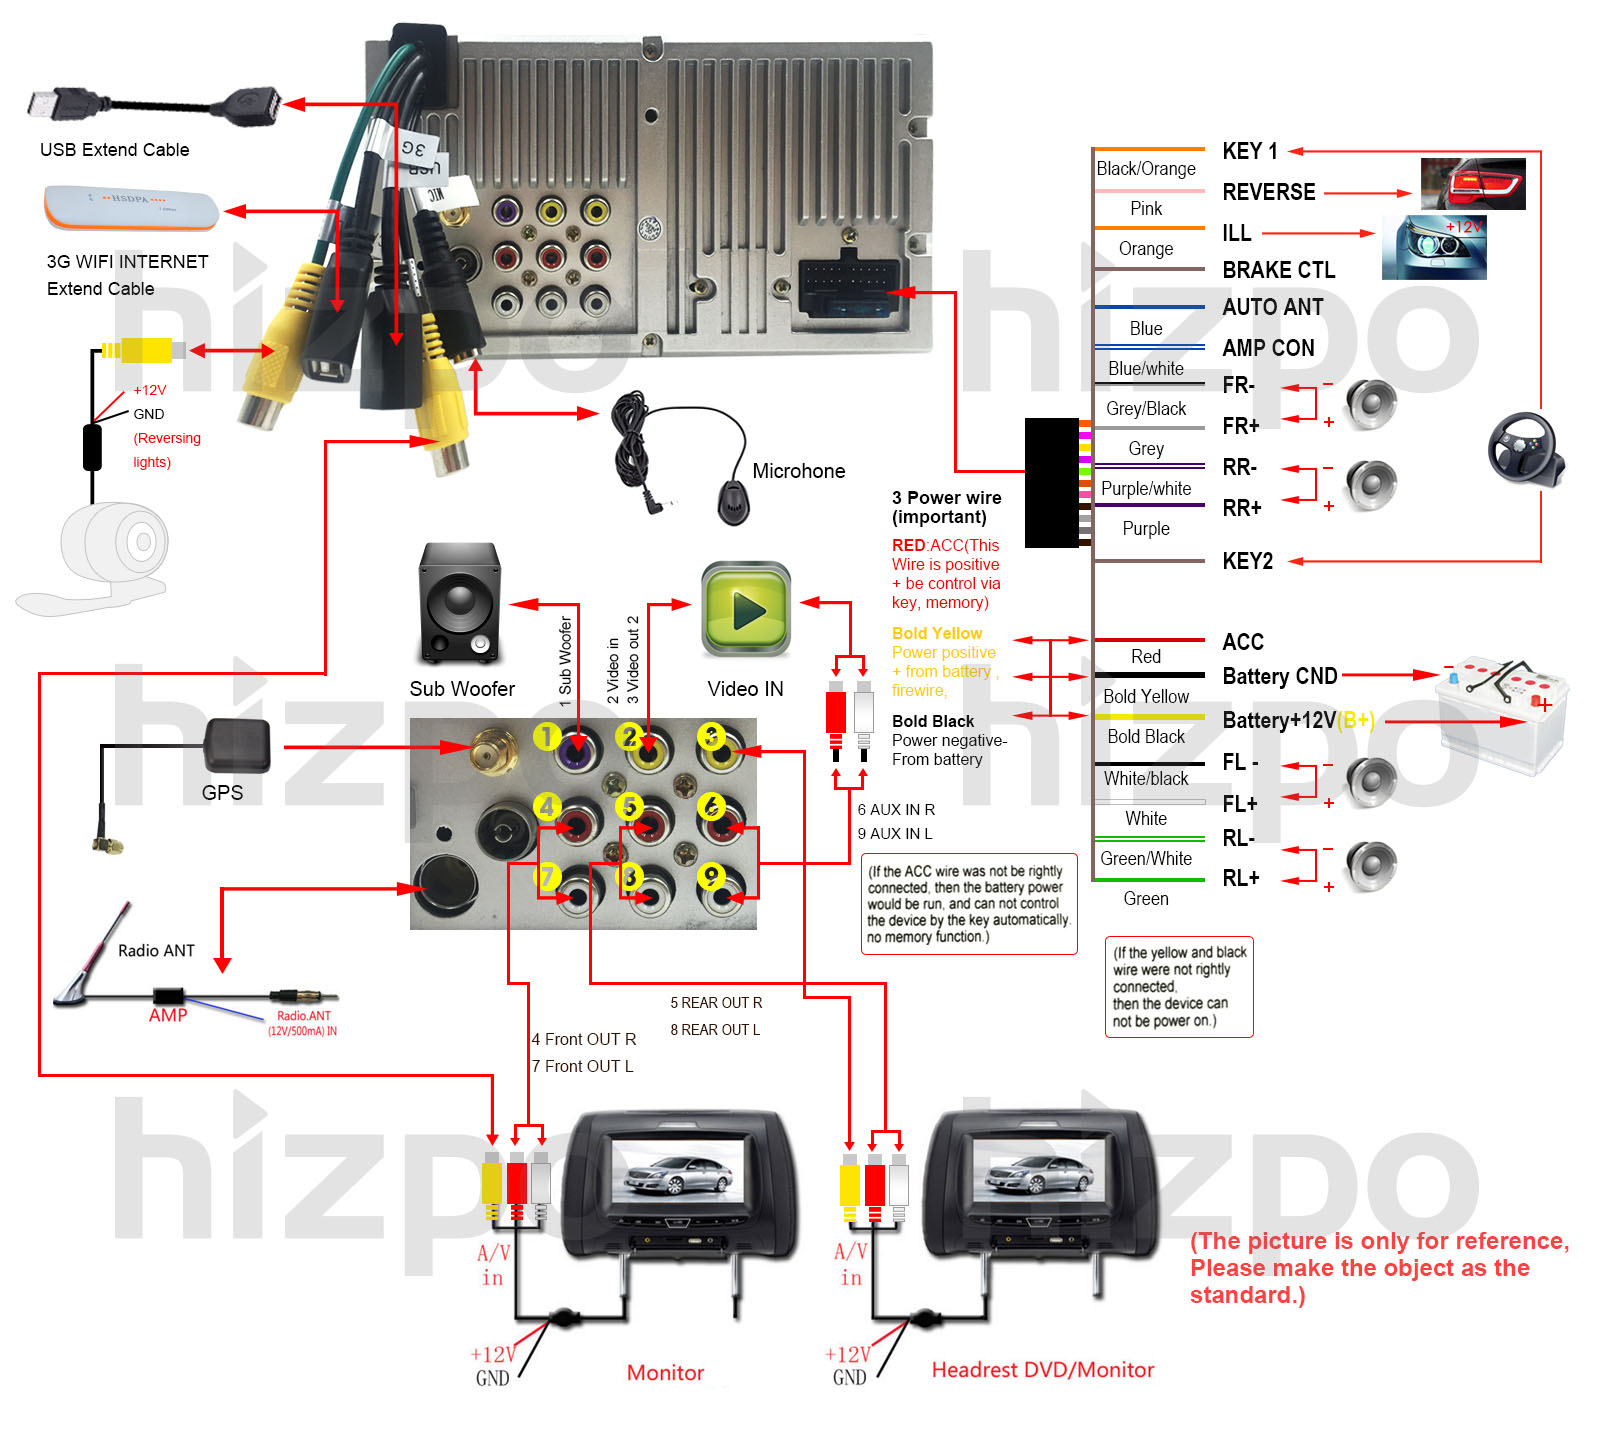 WiringDiagram 1?resize=665%2C599 alpine pkg rse2 wiring diagram wiring diagram images car dvd player wiring diagram at crackthecode.co